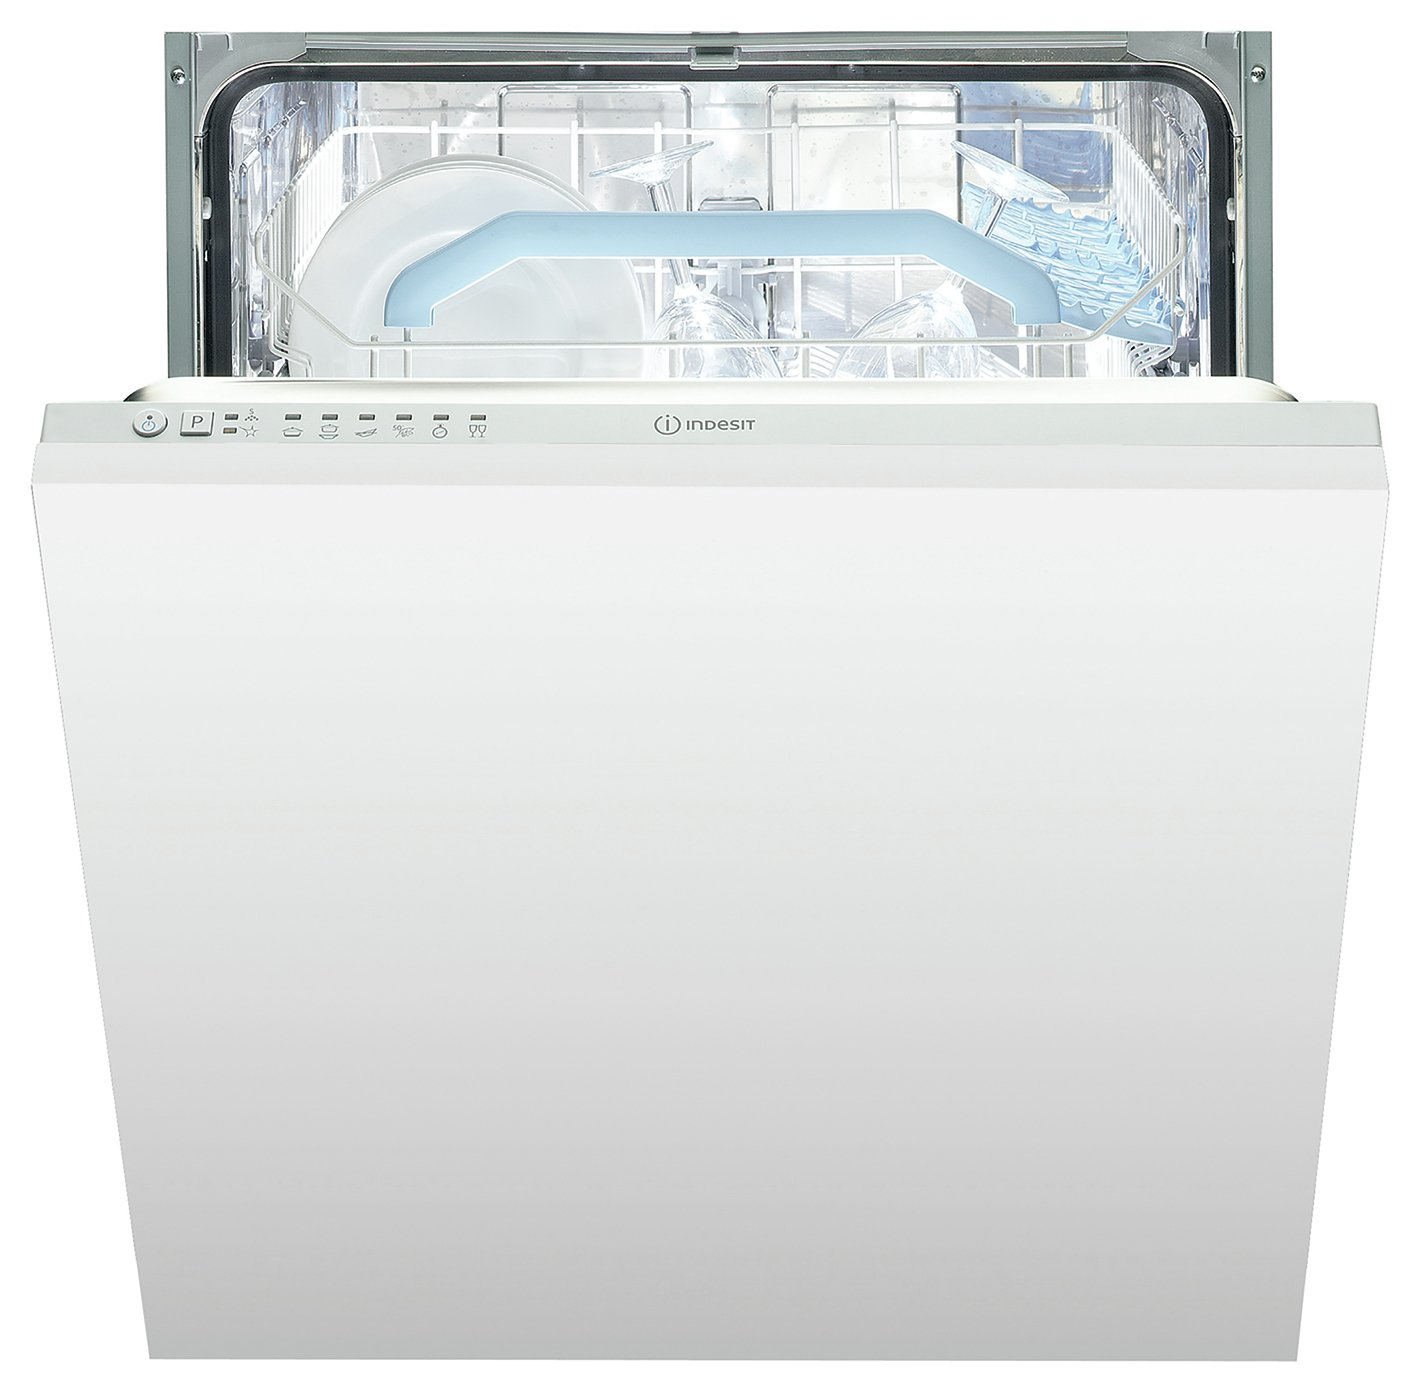 Indesit - DIF16B1 Dishwasher - White